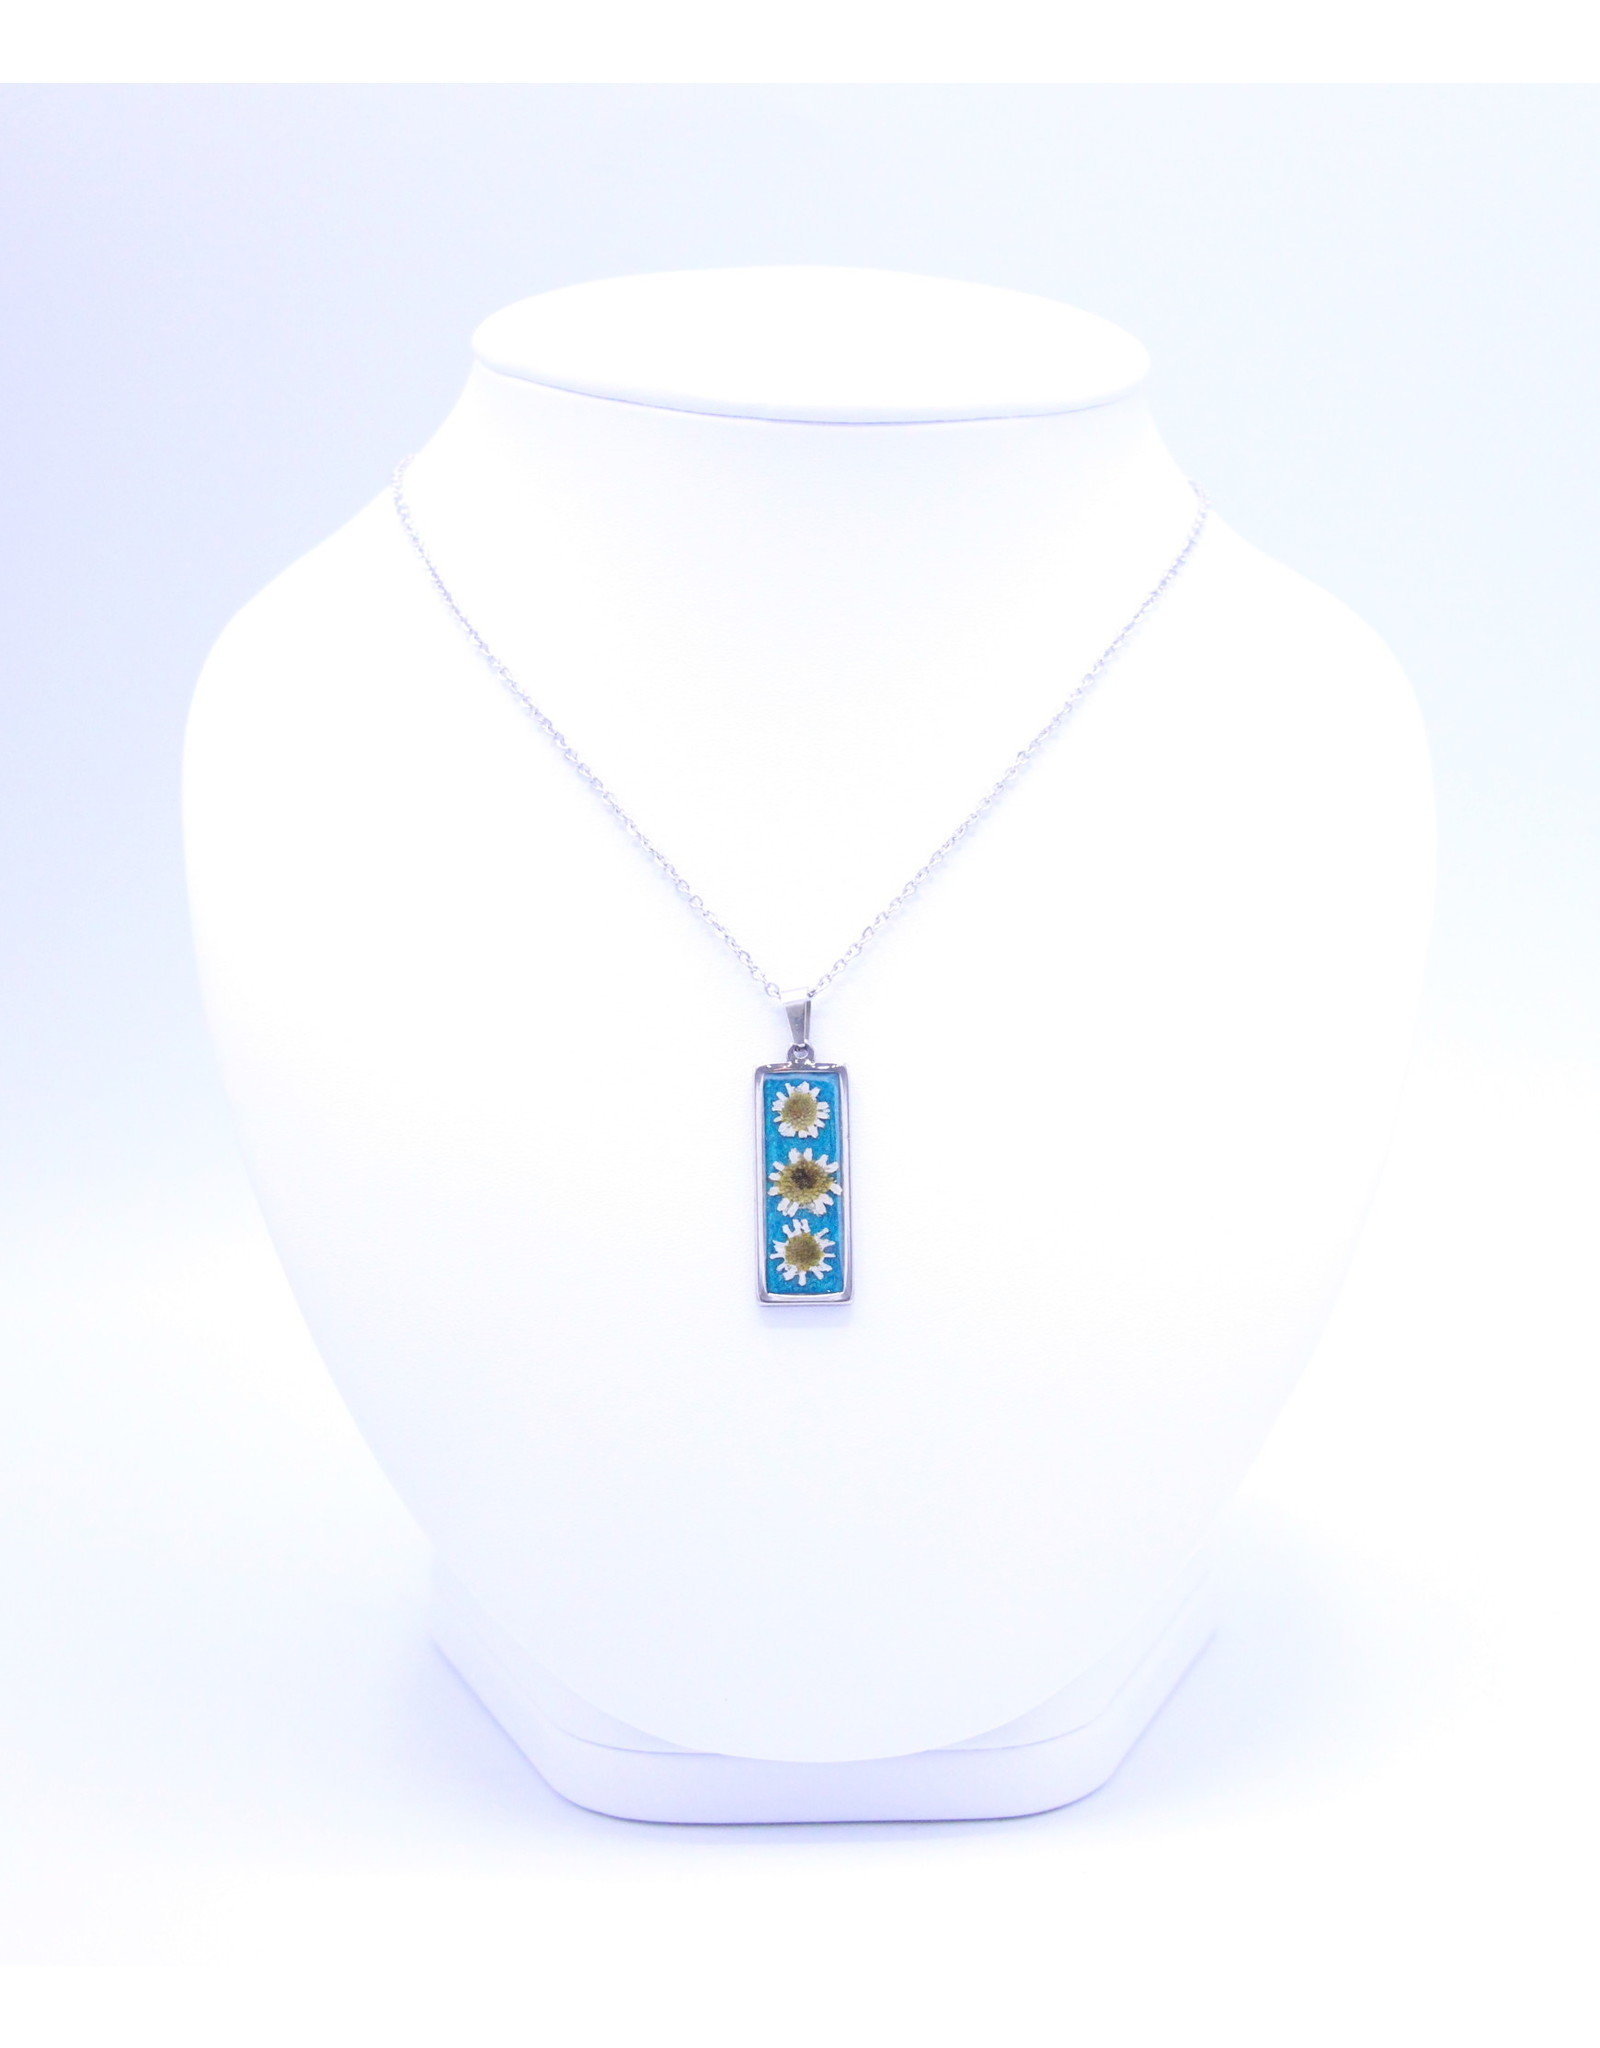 25mm Daisy Necklace - N25D1